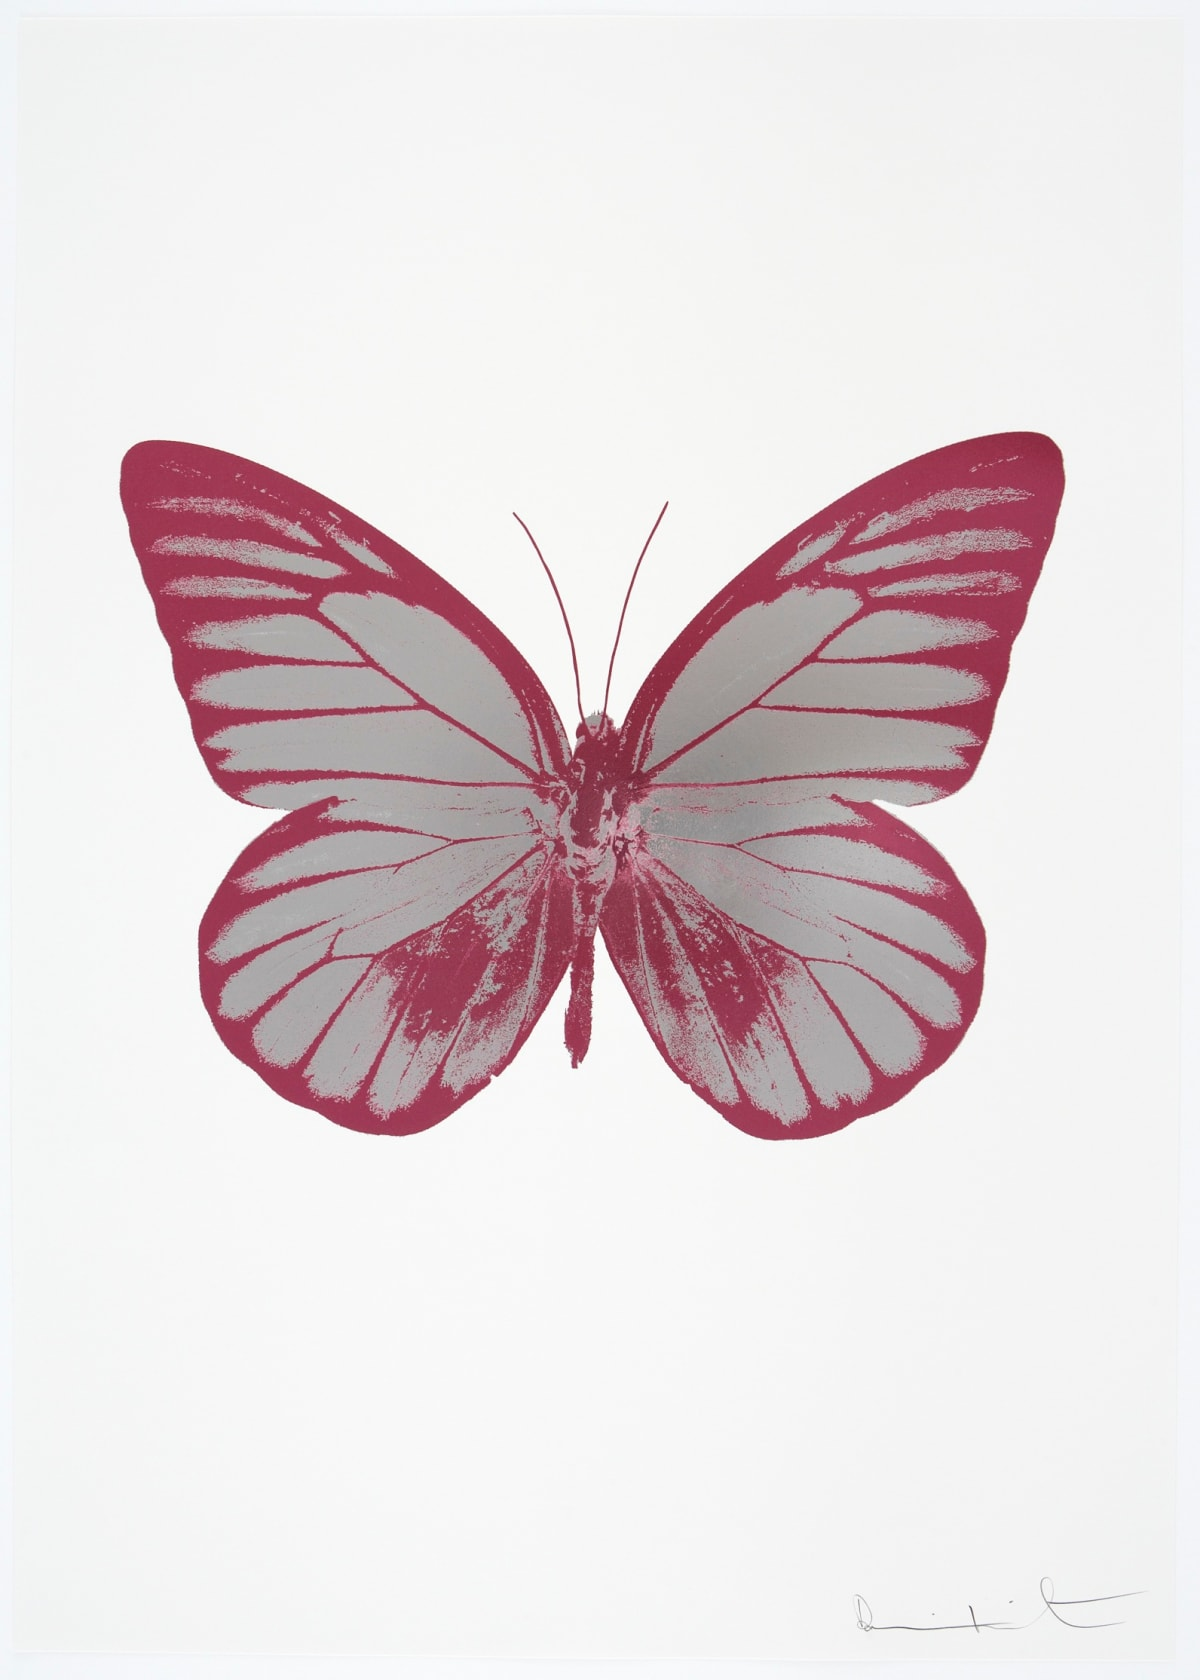 Damien Hirst The Souls I - Silver Gloss/Loganberry Pink/Loganberry Pink, 2010 2 colour foil block on 300gsm Arches 88 archival paper. Signed and numbered. Published by Paul Stolper and Other Criteria 72 x 51cm OC7744 / 659-7 Edition of 15